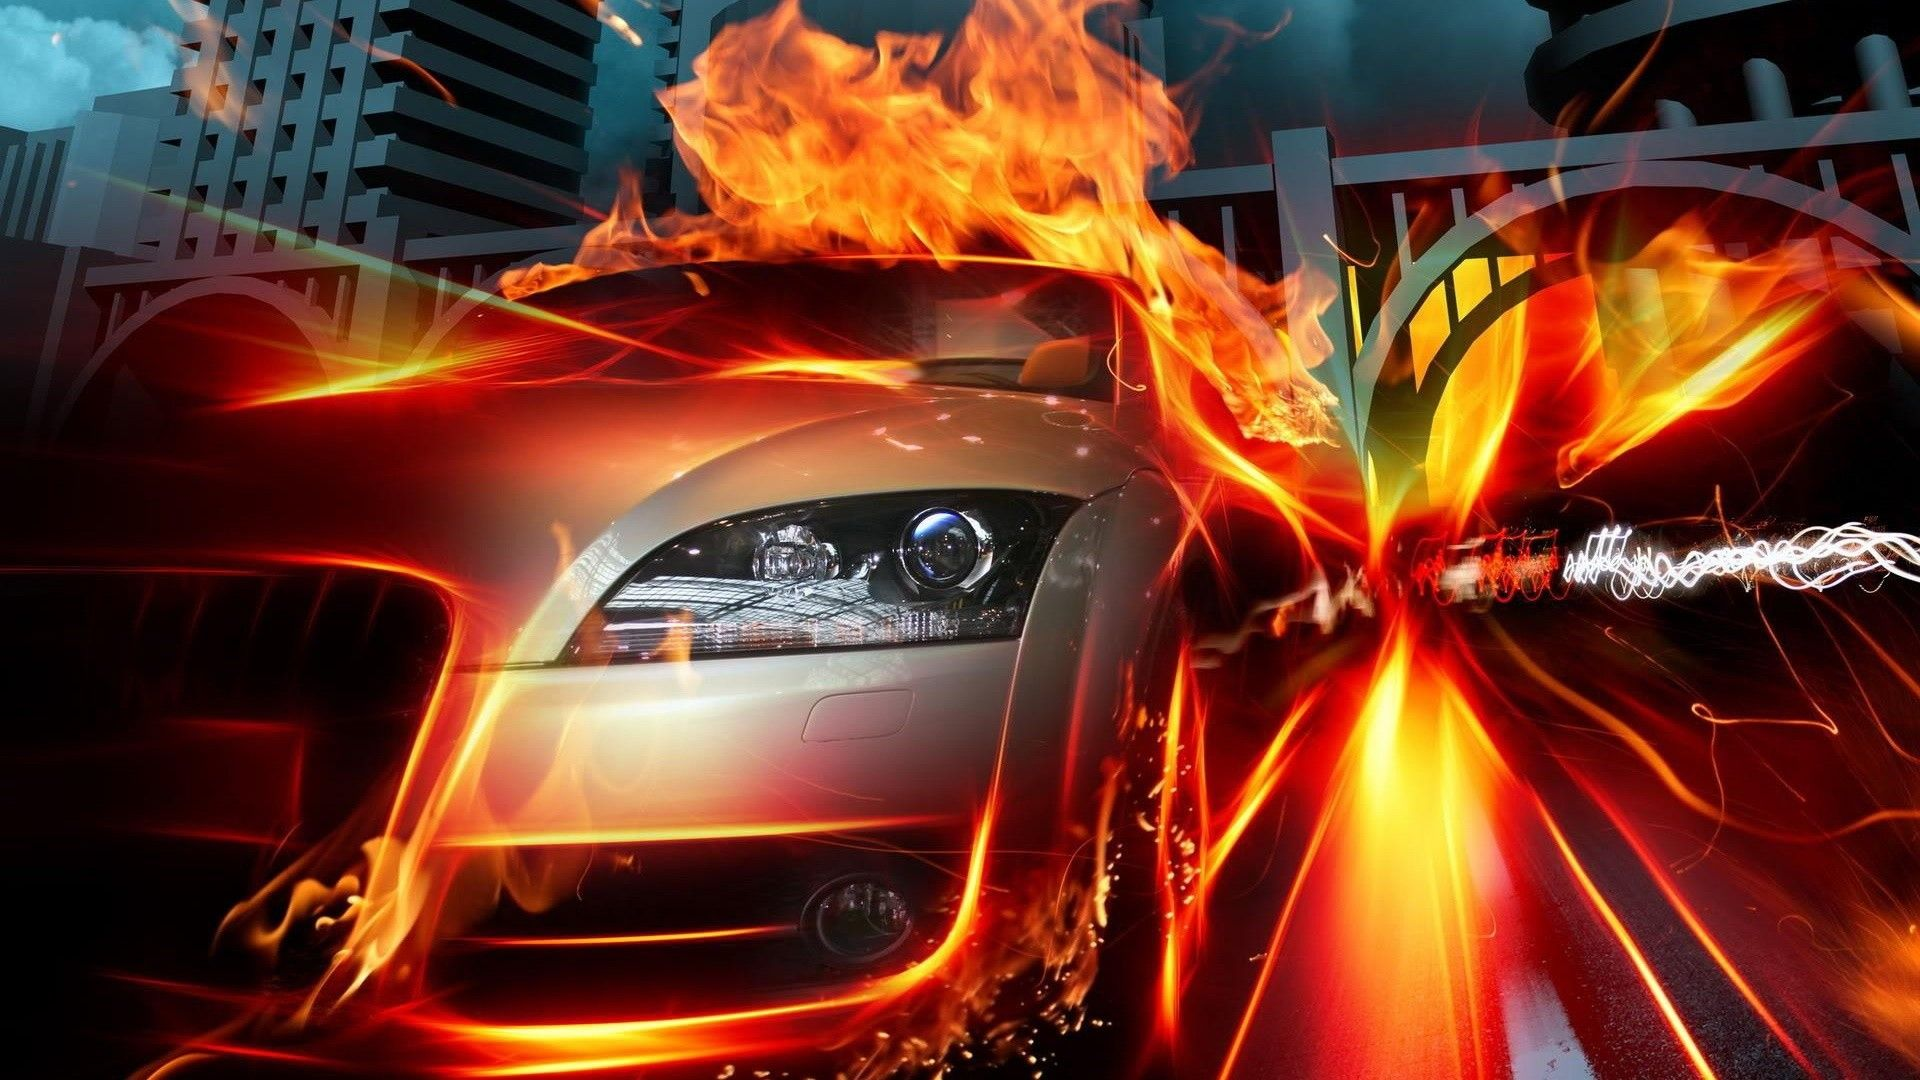 Car On Fire HD Cool Wallpapers HD Wallpaper Fuego - Cool cars on fire